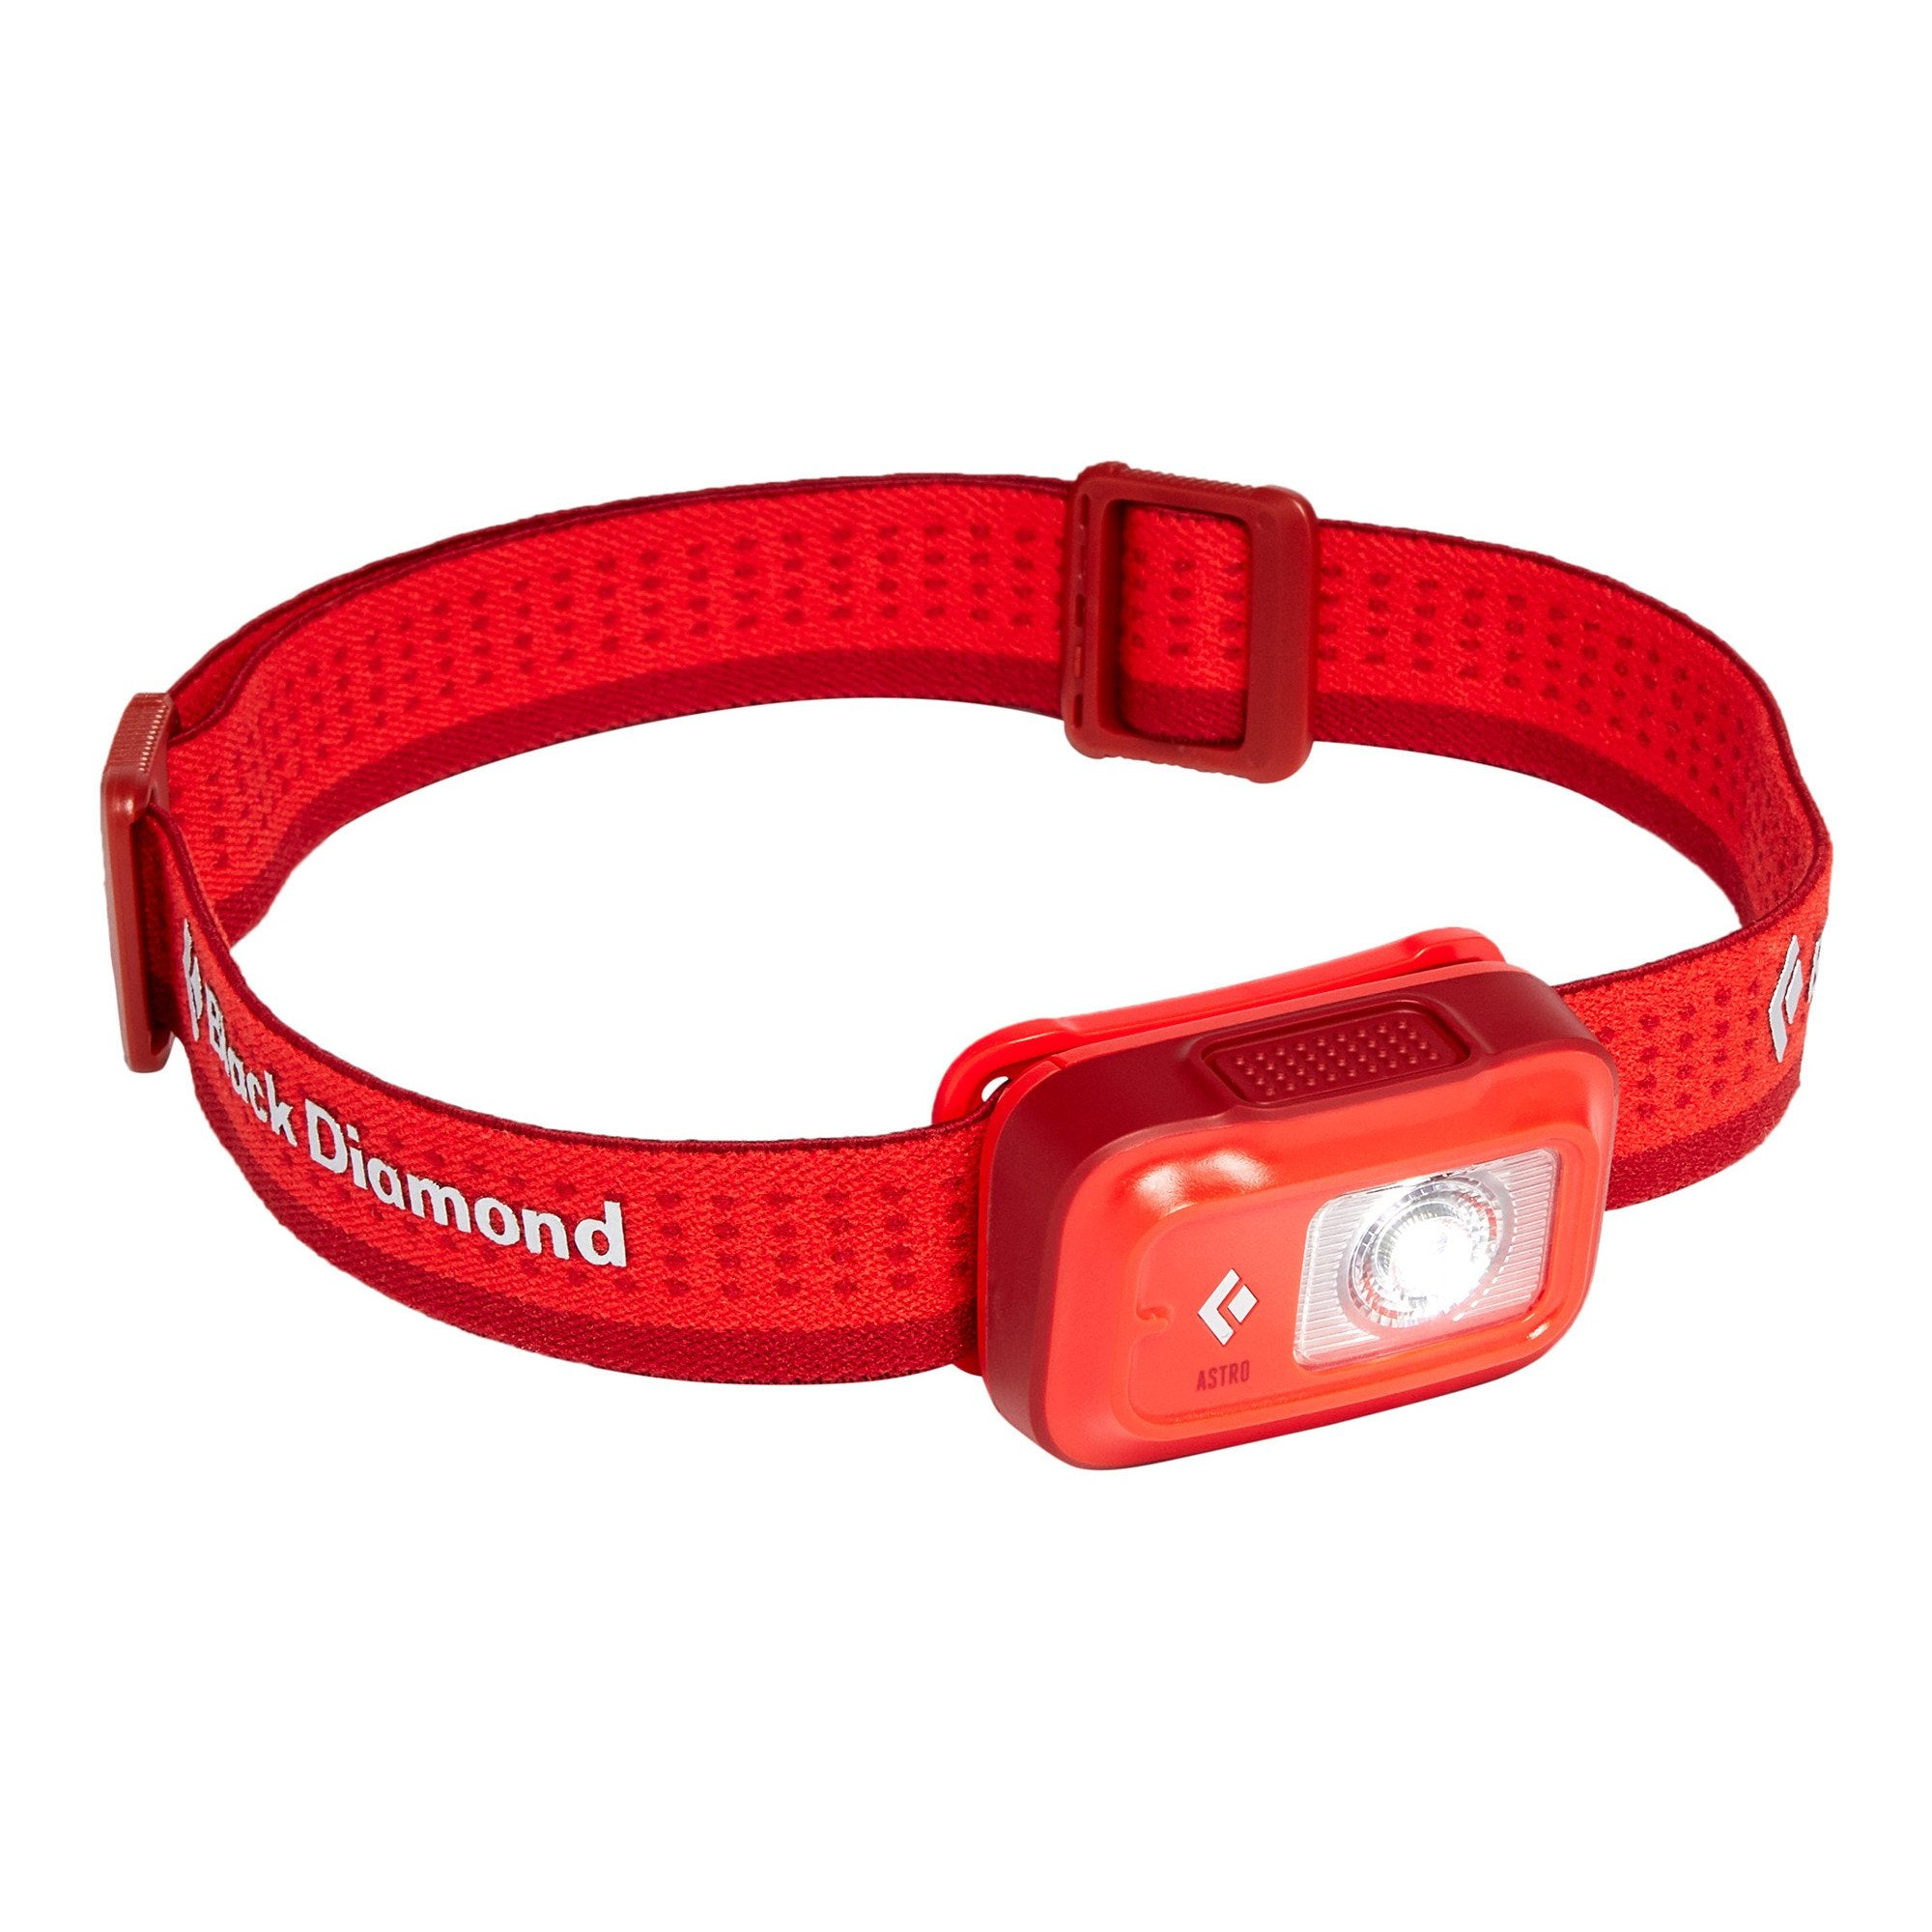 Black Diamond Astro 175 Head torch, front/side view in red colour